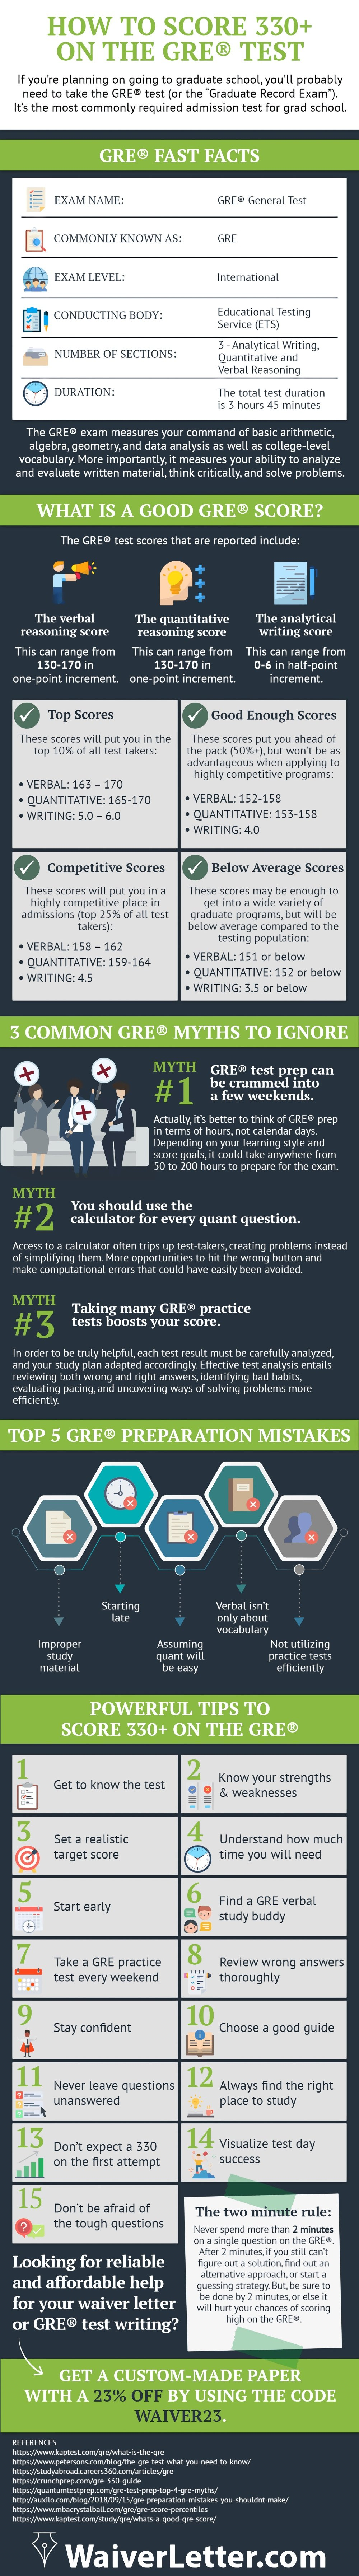 Ultimate Guide to Score 330+ on the GRE® Test